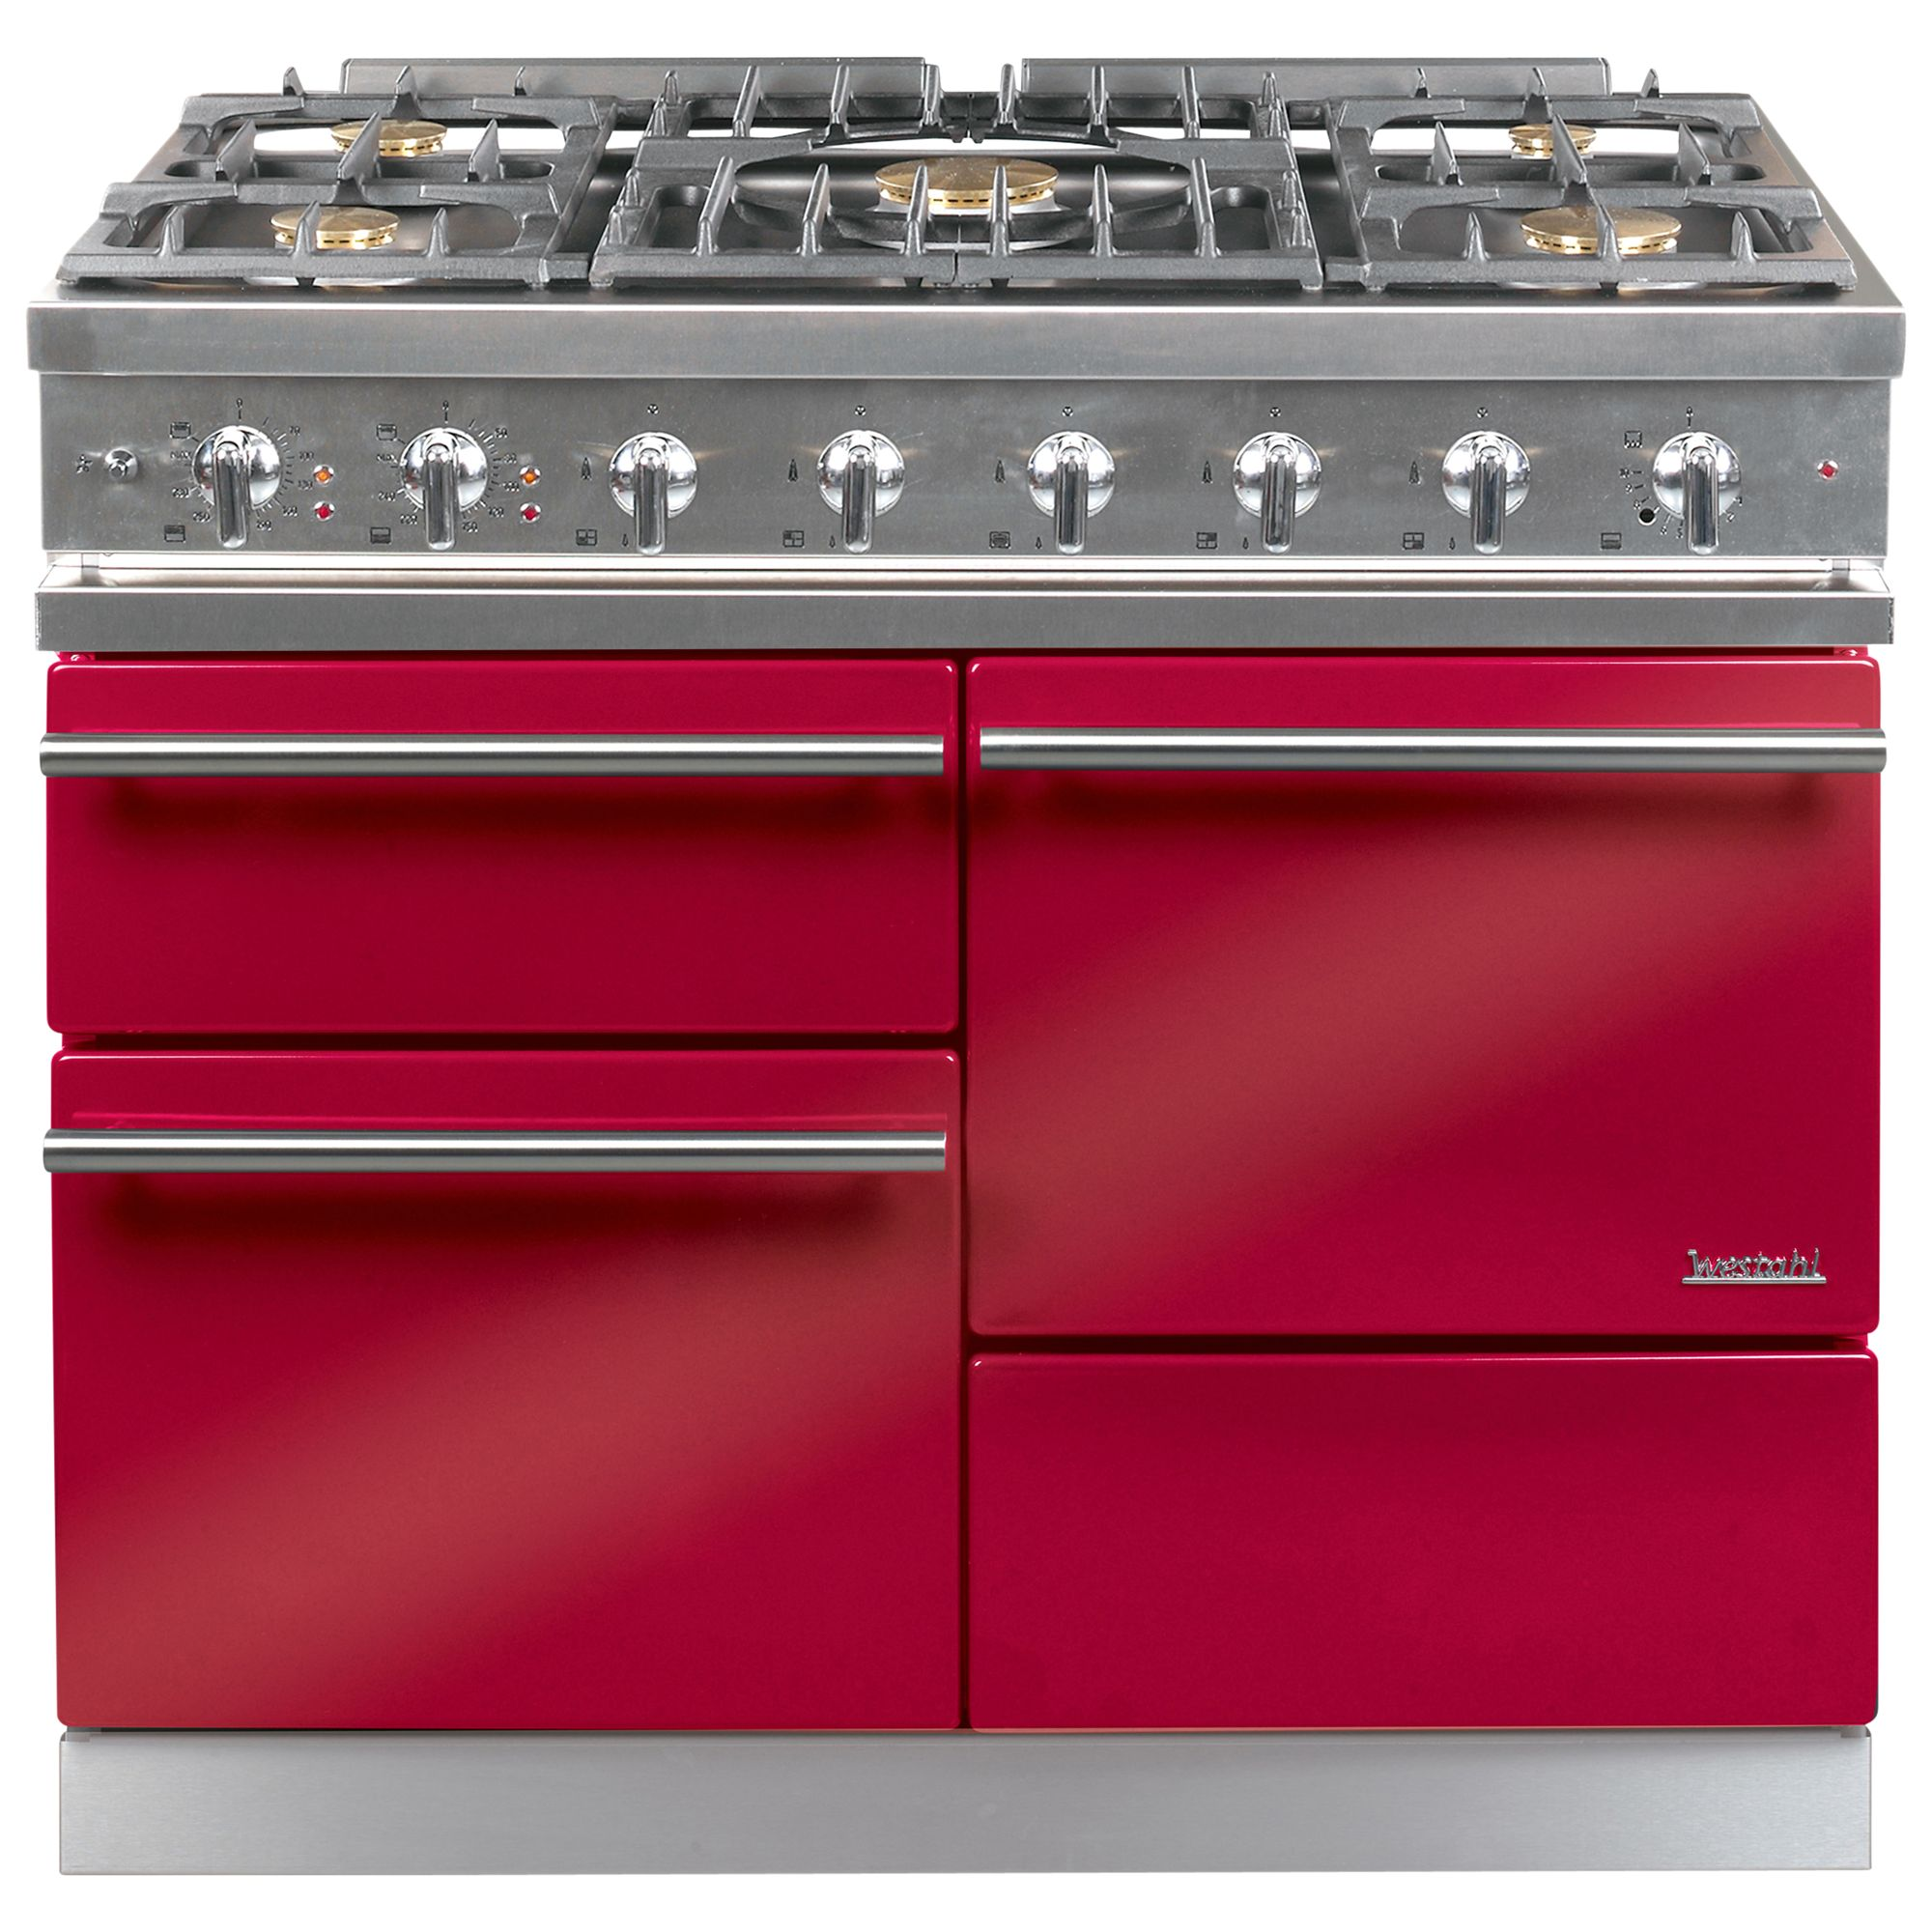 Westahl Macon WG1053GECT Dual Fuel Cooker, Chinese Red at John Lewis